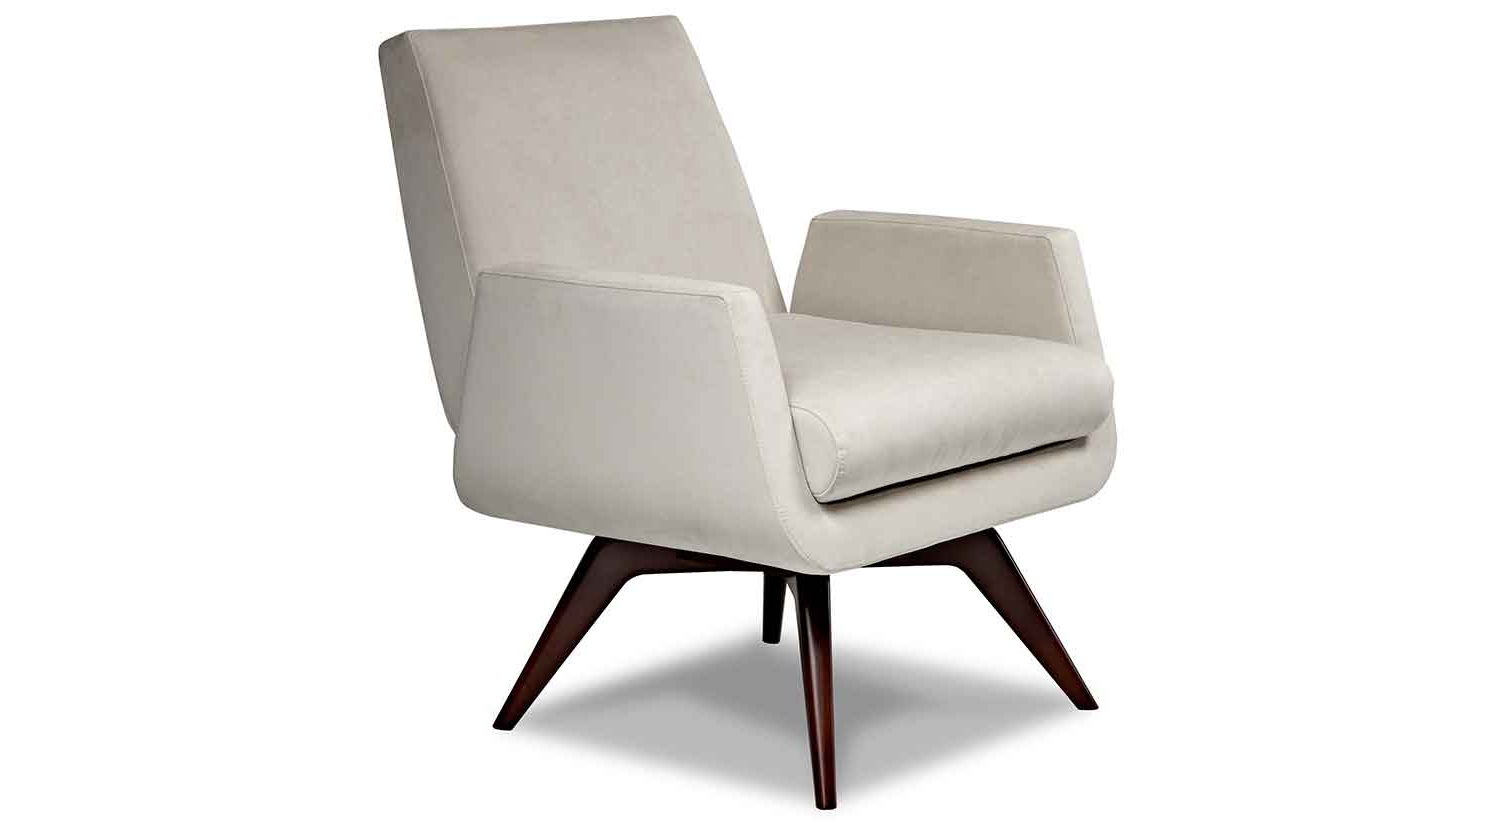 Circle Intended For Current Loft Black Swivel Accent Chairs (View 6 of 20)